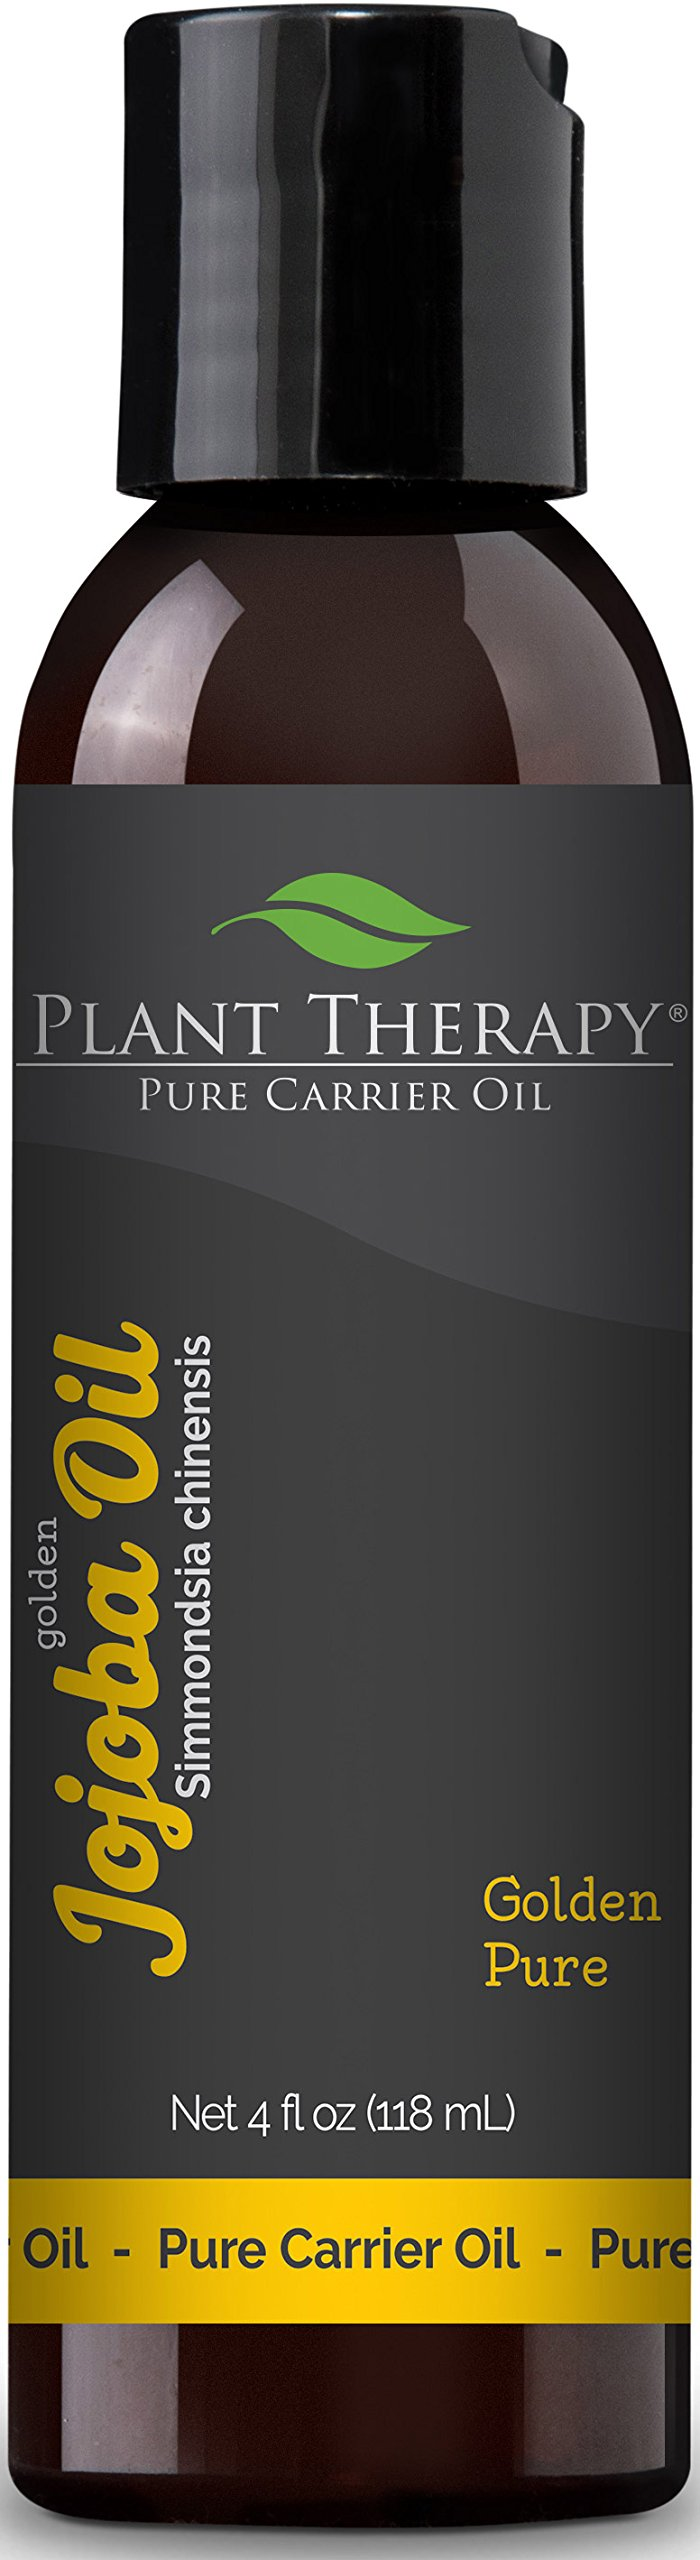 Plant Therapy Jojoba Oil. 100% Pure, Cold-Pressed, Natural and GMO-free Moisturizer and Carrier Oil for Essential Oils. 4 oz. by Plant Therapy